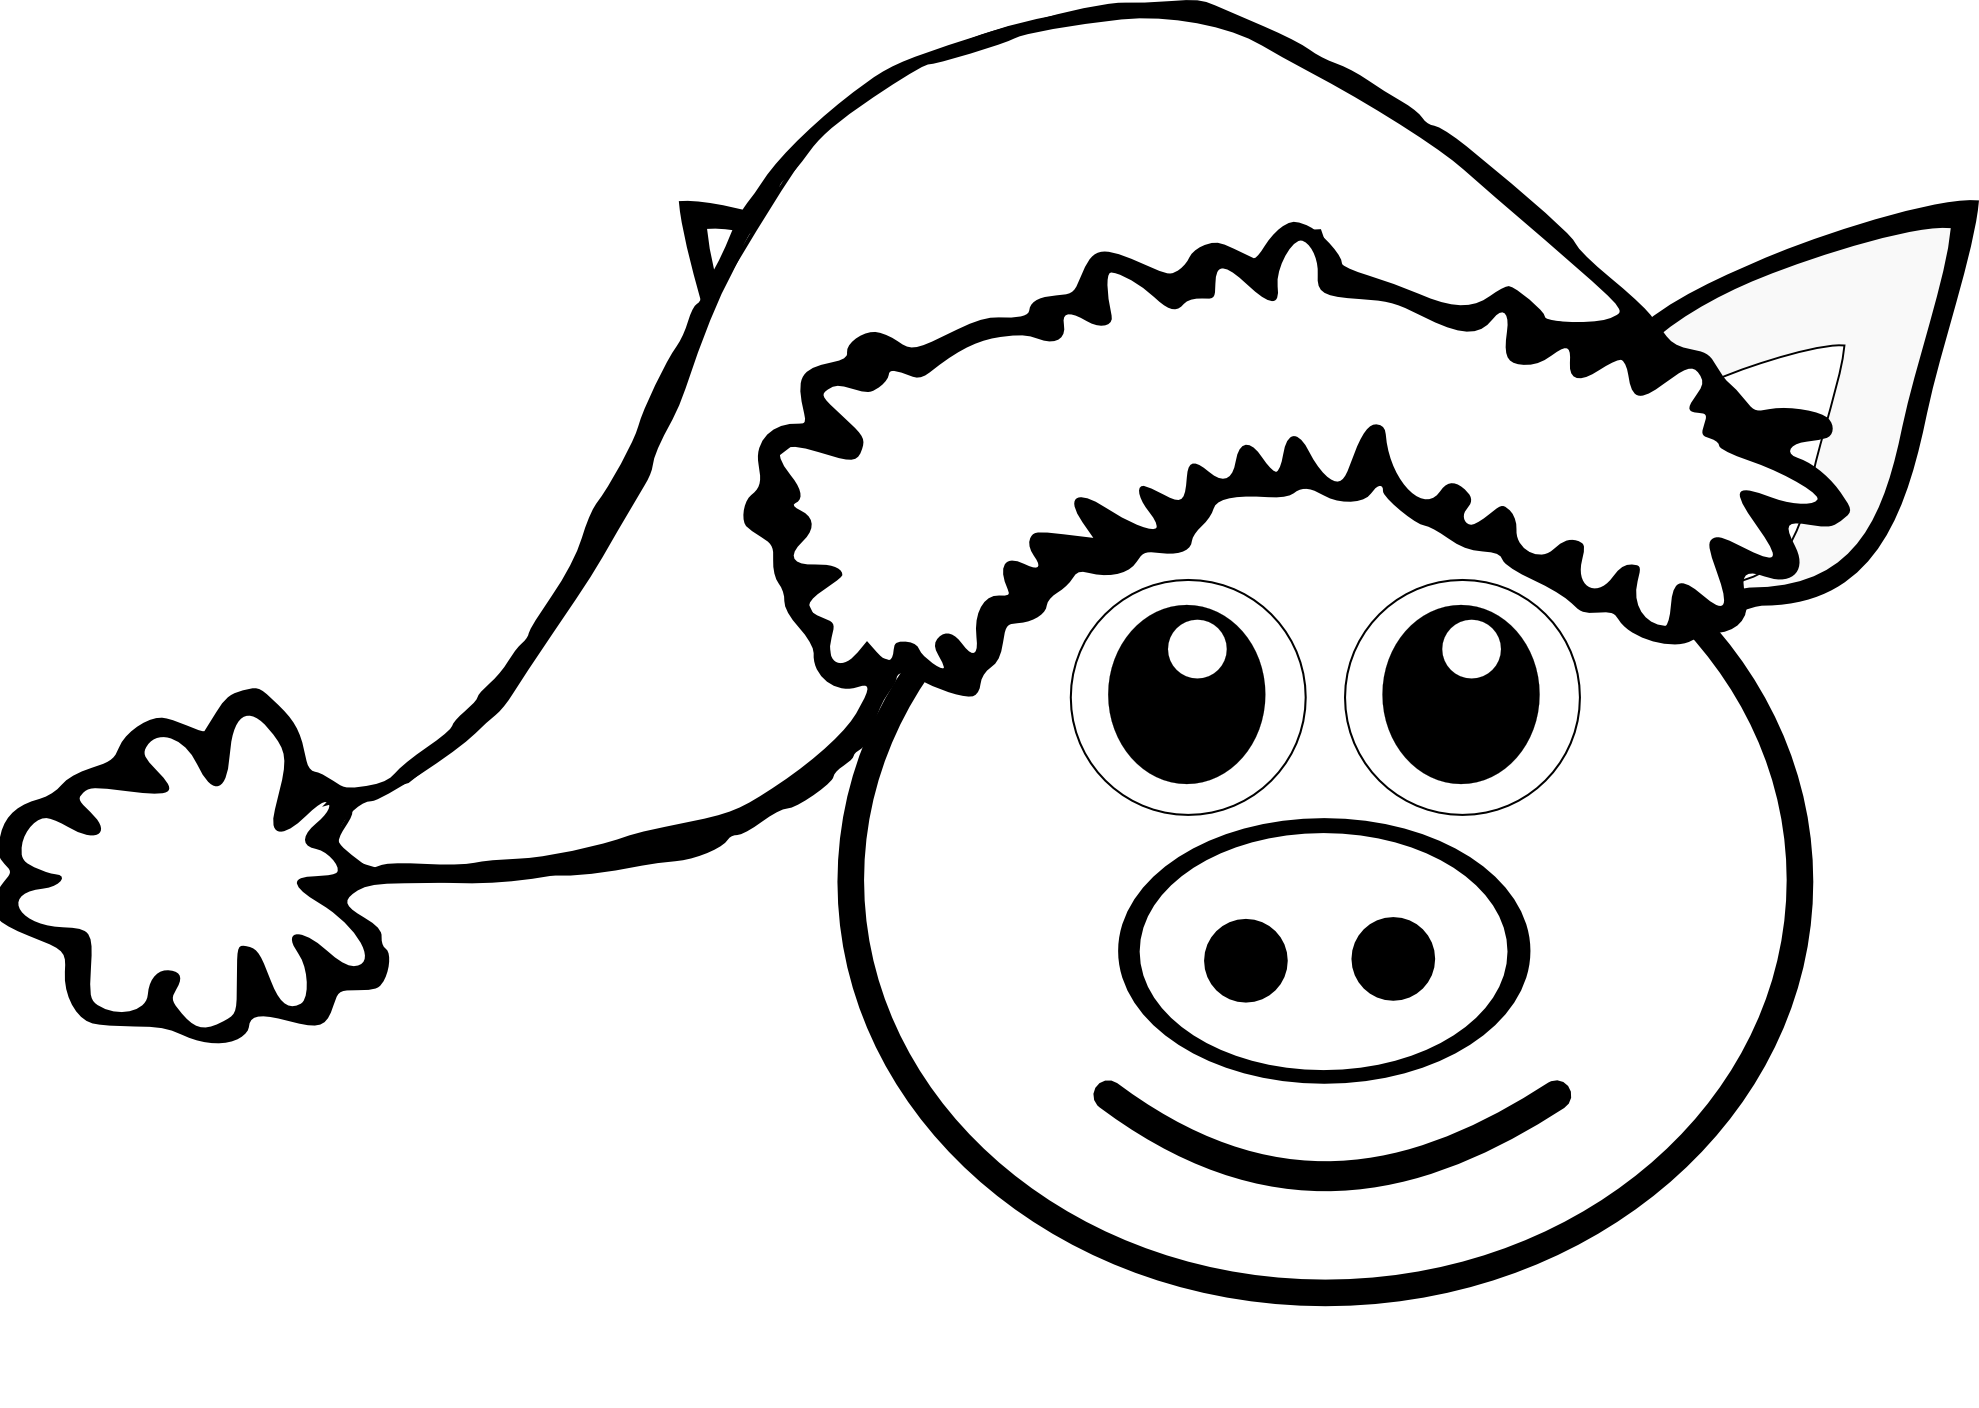 Line Drawing Of A Pig Face : Hippie van clipart black and white panda free